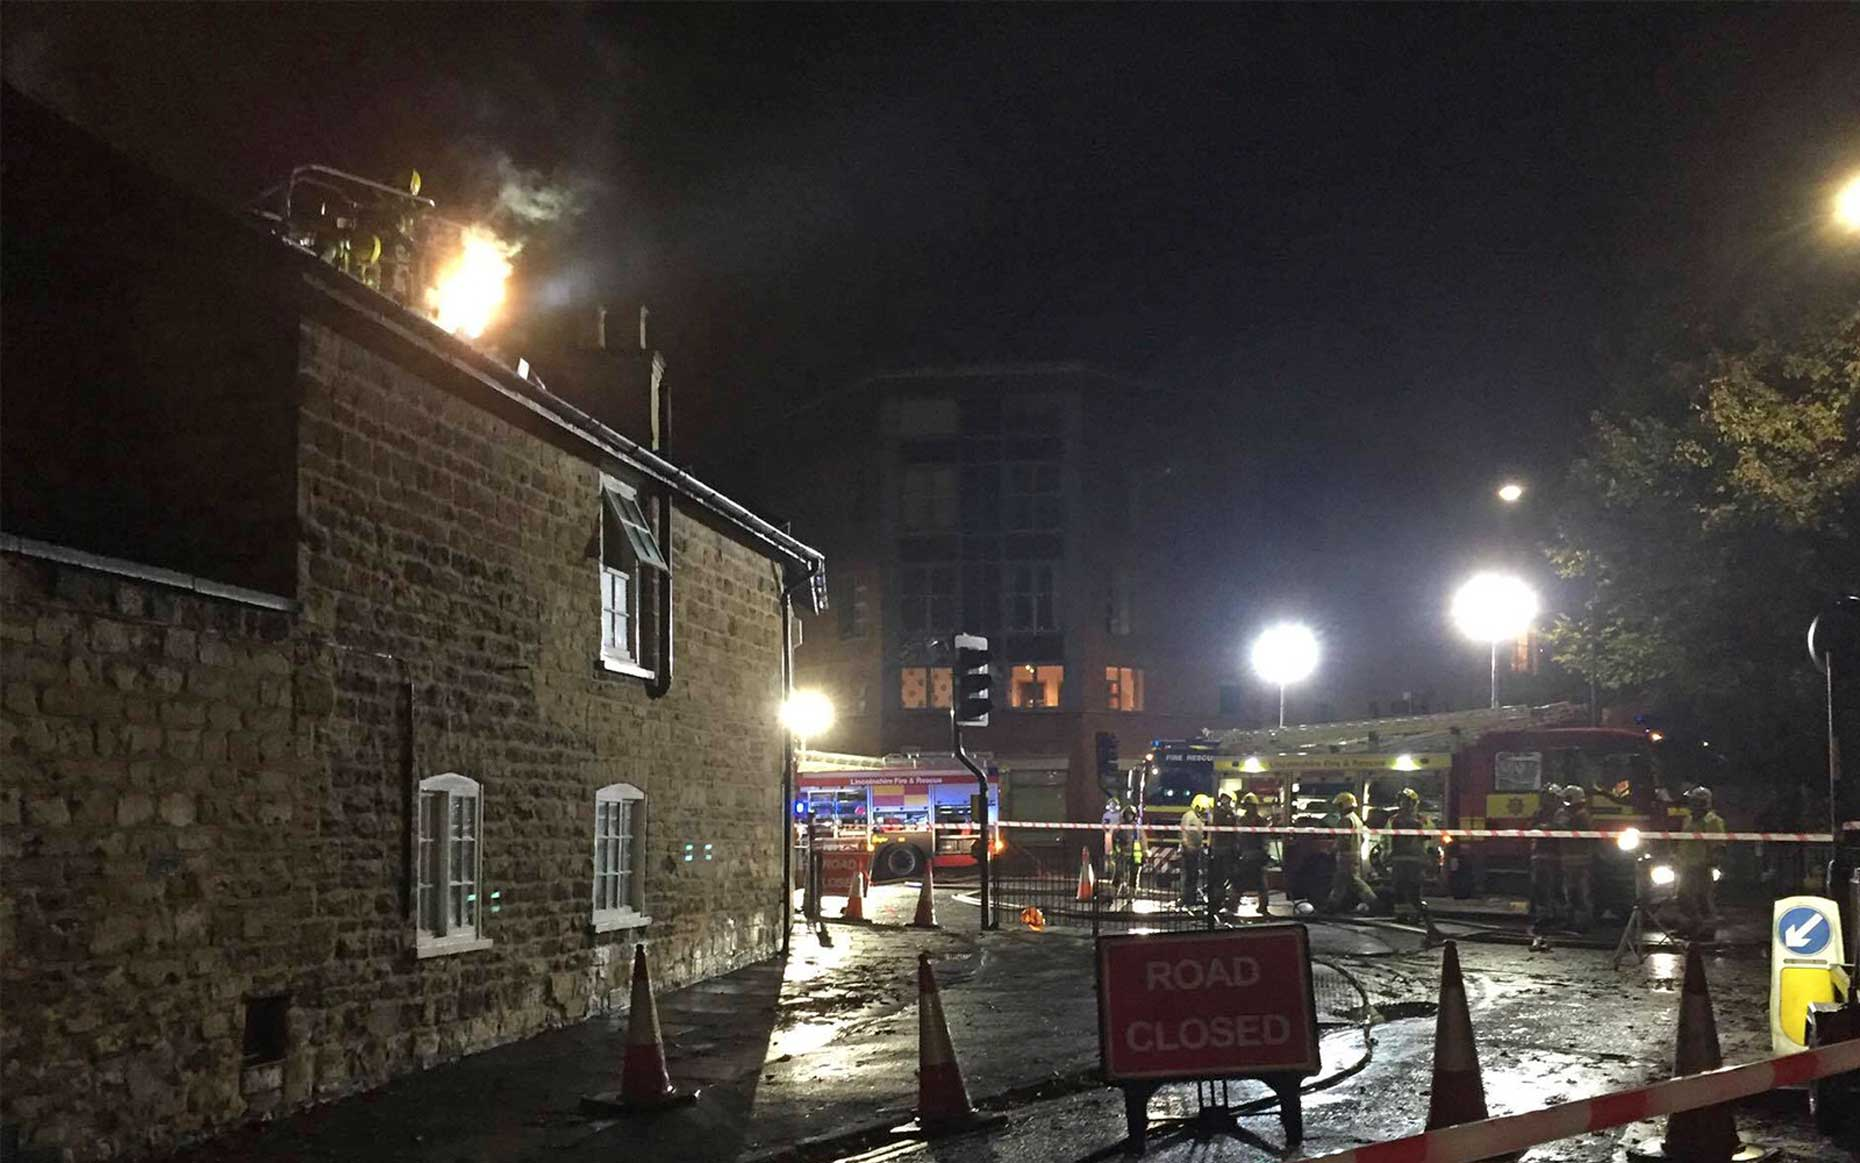 Six crews attended the blaze shortly after 10pm on Monday, November 14.